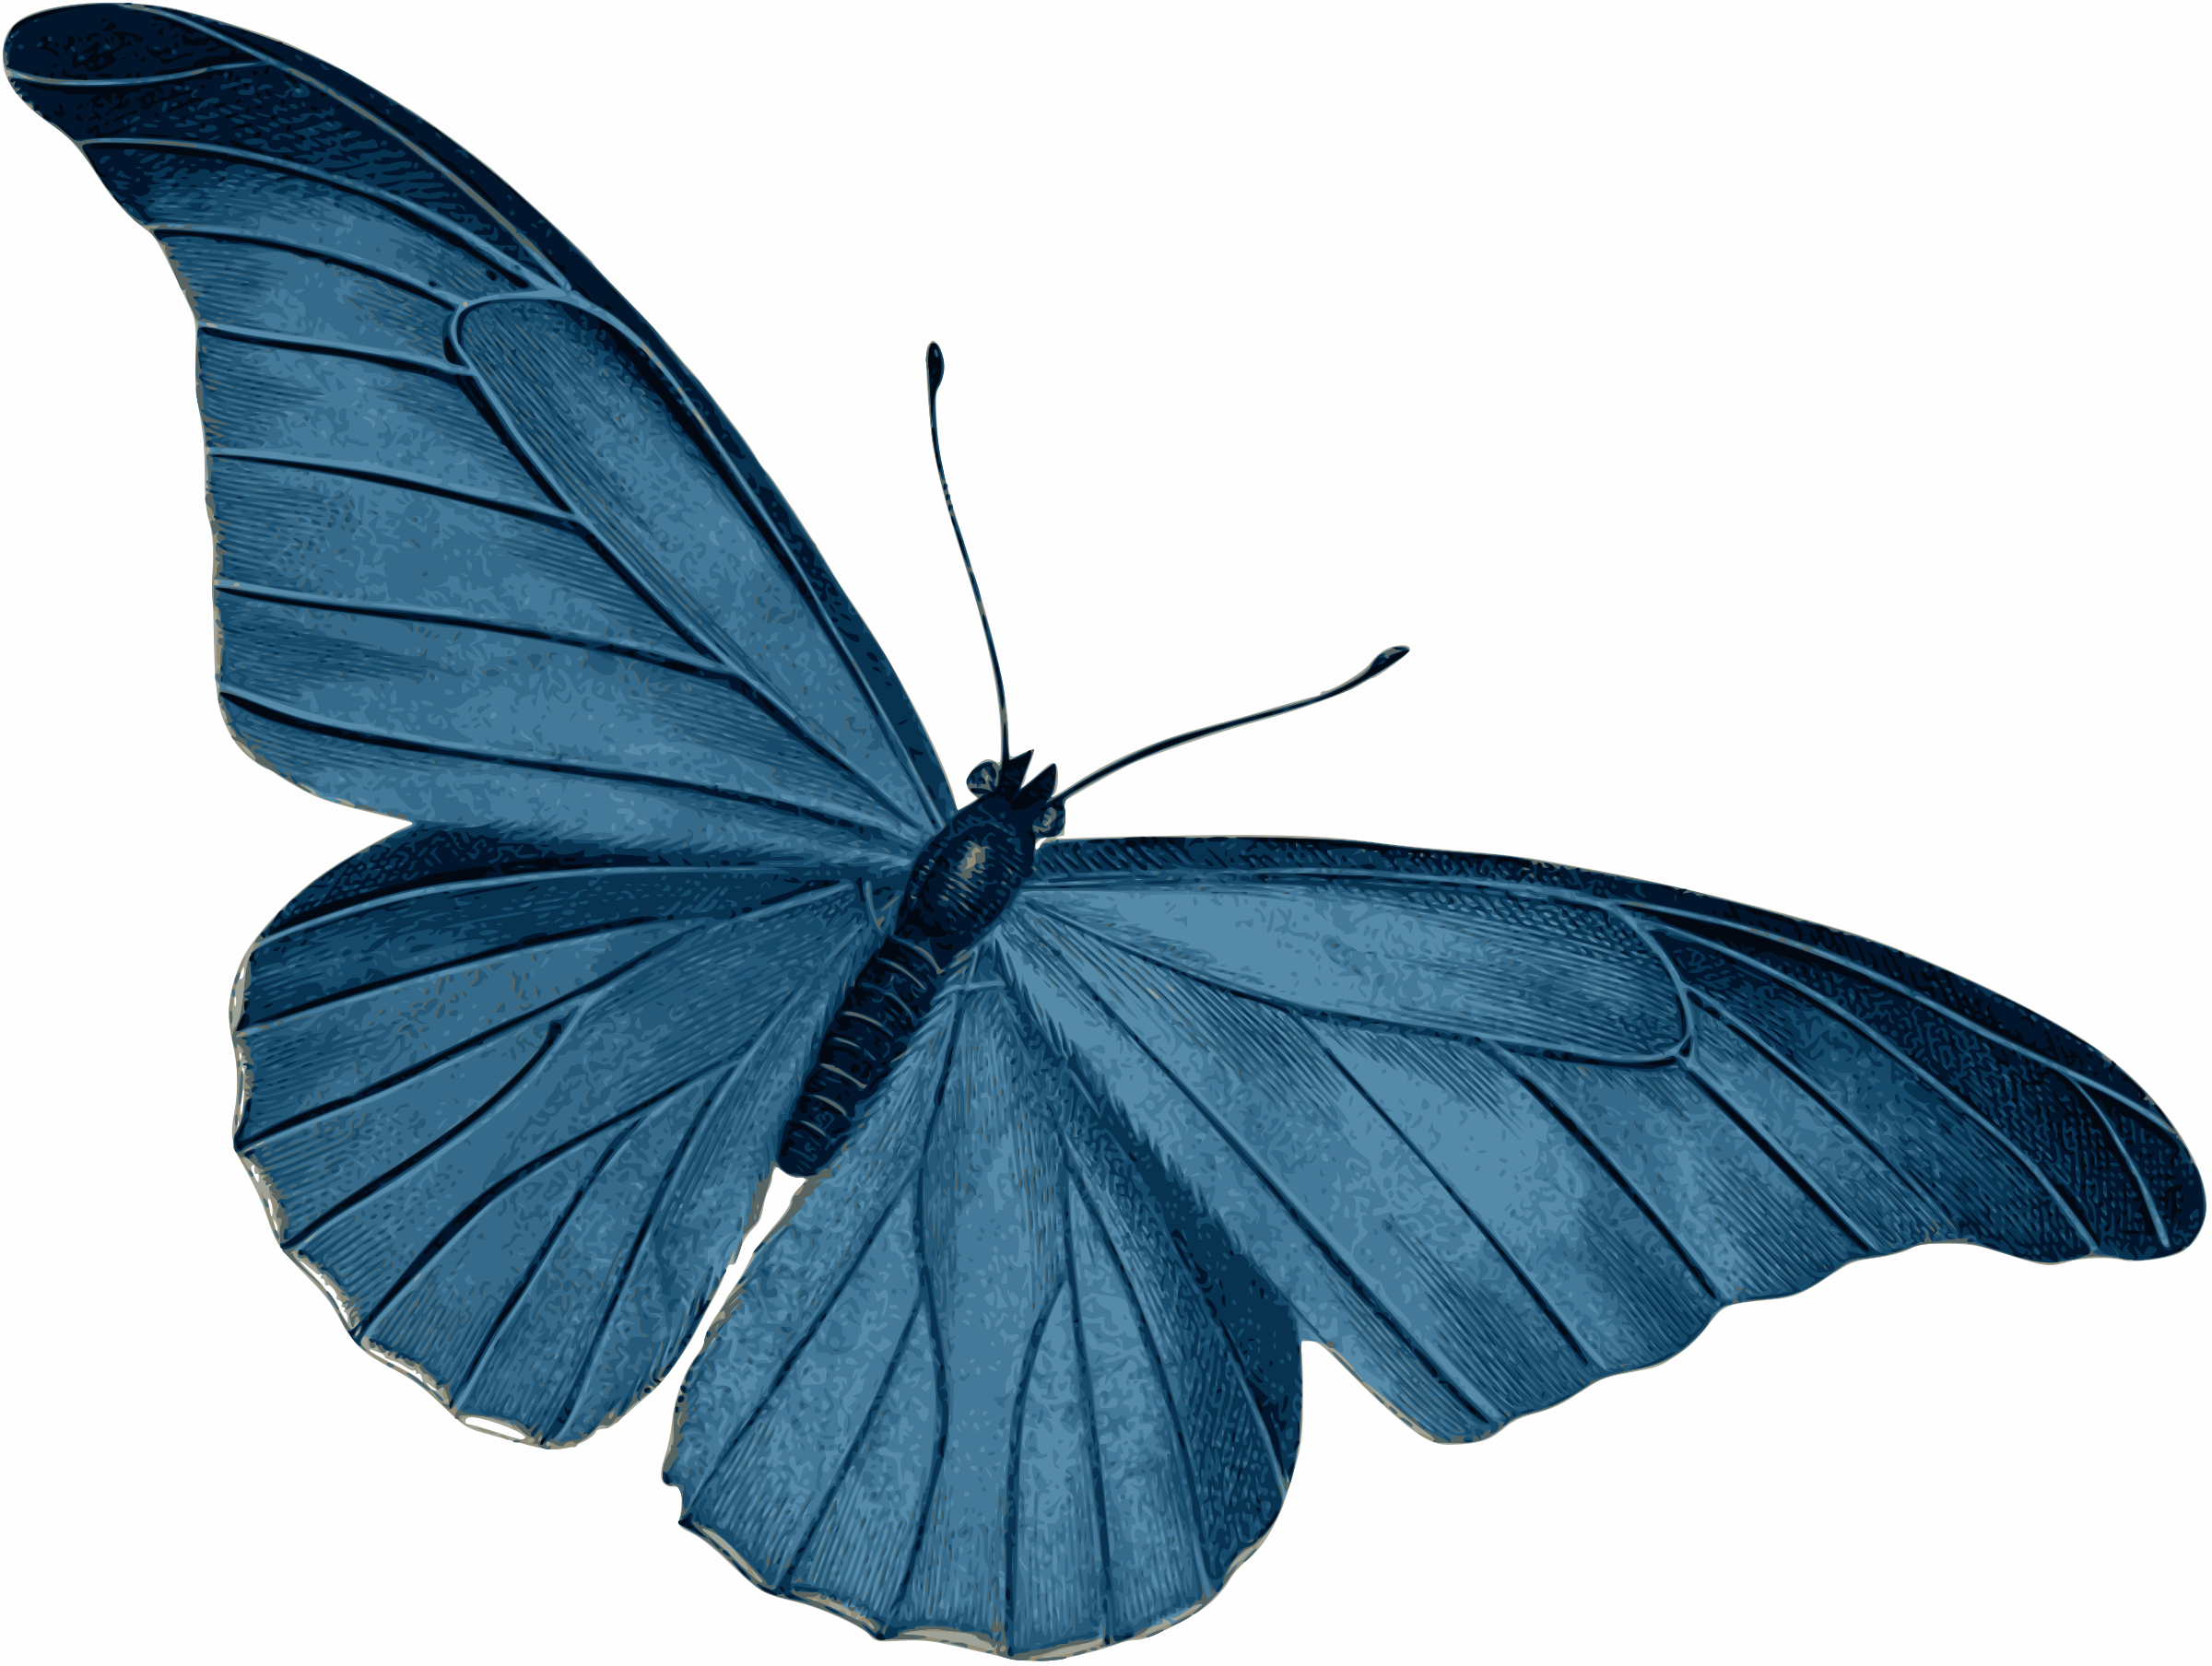 Blue Butterfly Vector Art Image Free Stock Photo Public Domain